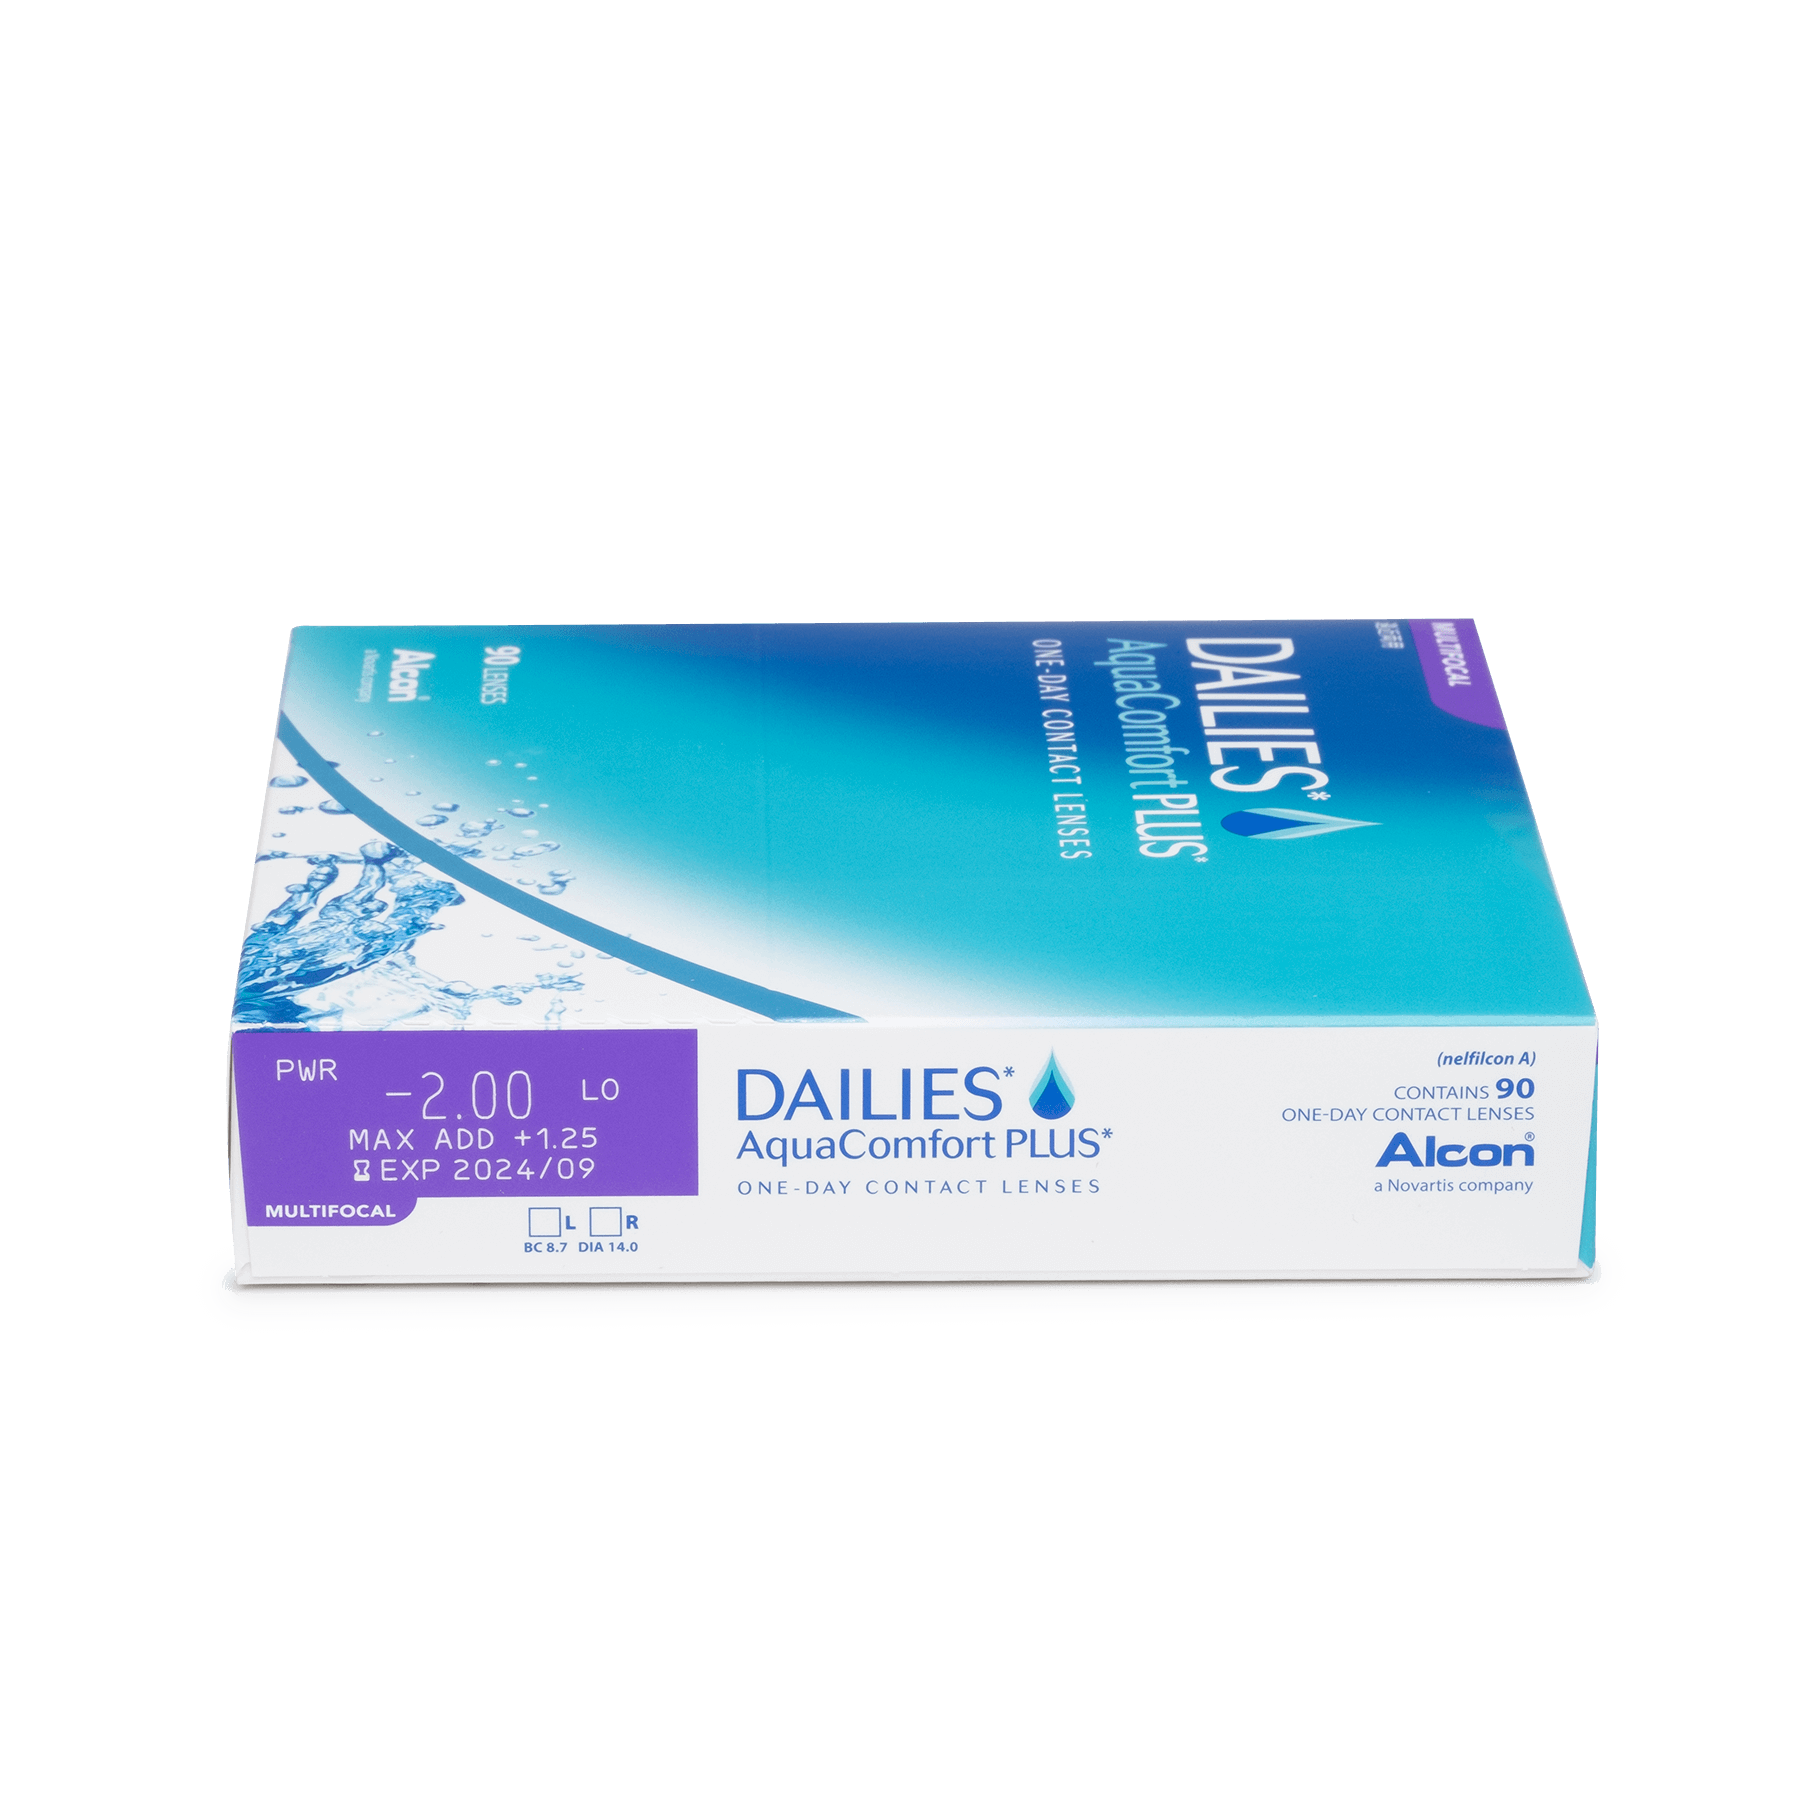 DAILIES AquaComfort Plus Multifocal 90pk*